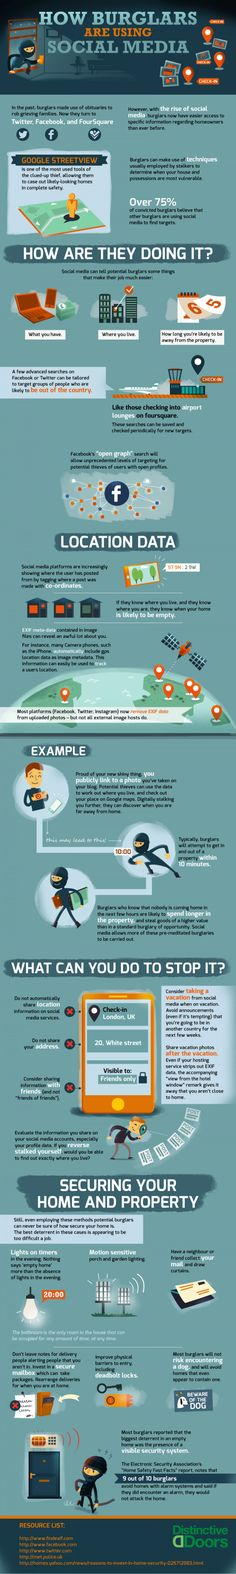 Home Security: How Burglars Use Social Media. This is an interesting infographic. The most important detail that the burglar needs is your address don't post it online…. Home Security Tips, Online Security, Web Security, Mobile Security, Website Security, Security Service, Security Systems, E Learning, Social Media Tips